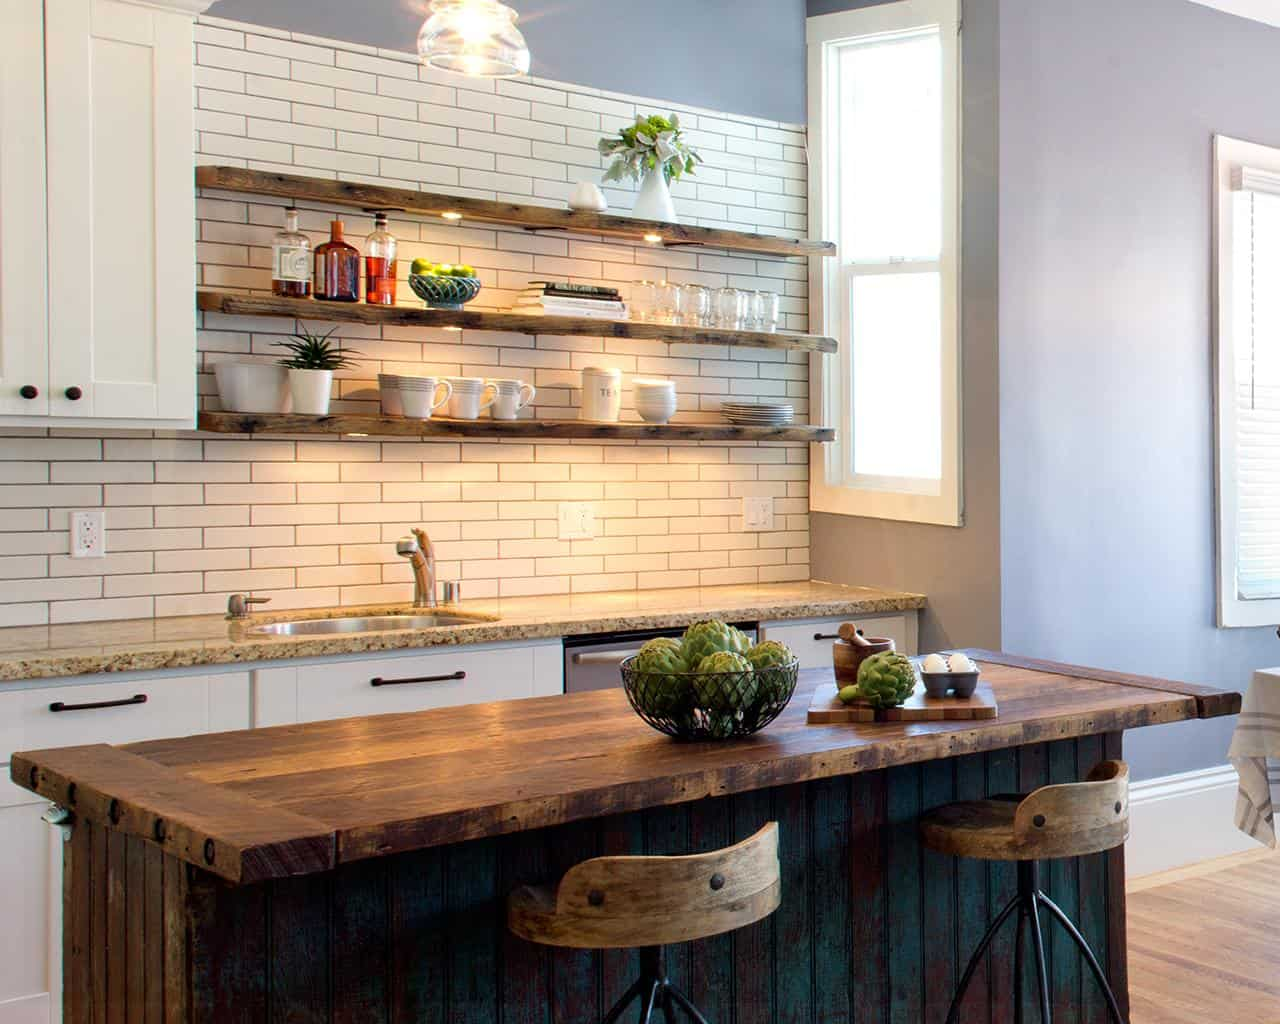 The Benefits Of Open Shelving In The Kitchen: Chic Kitchens With Open Shelving